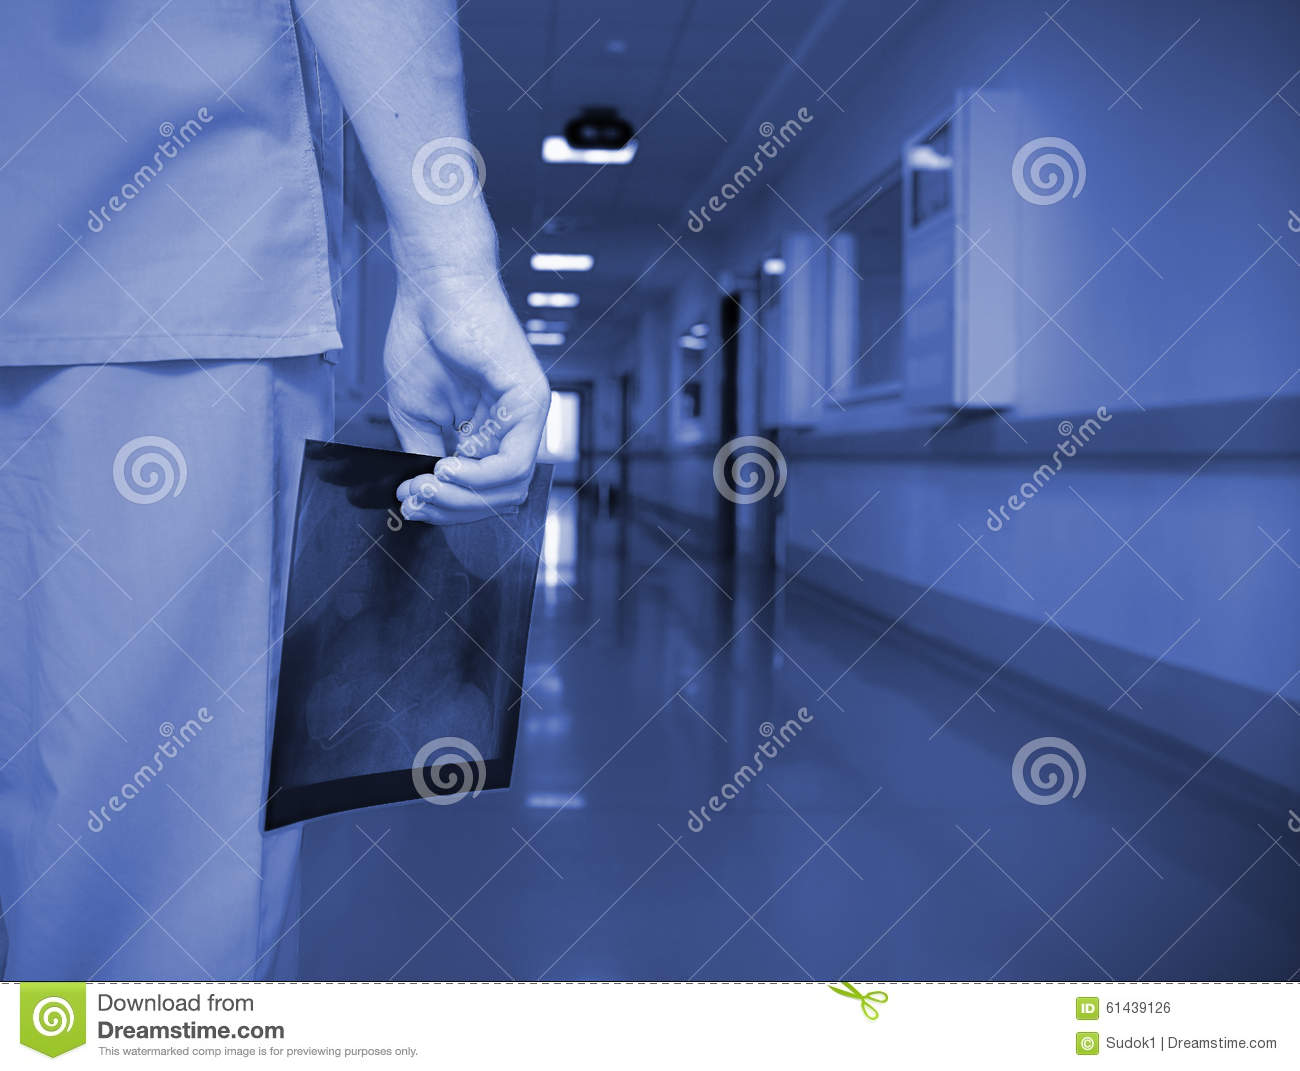 Doctor with x-ray image in the empty hallway